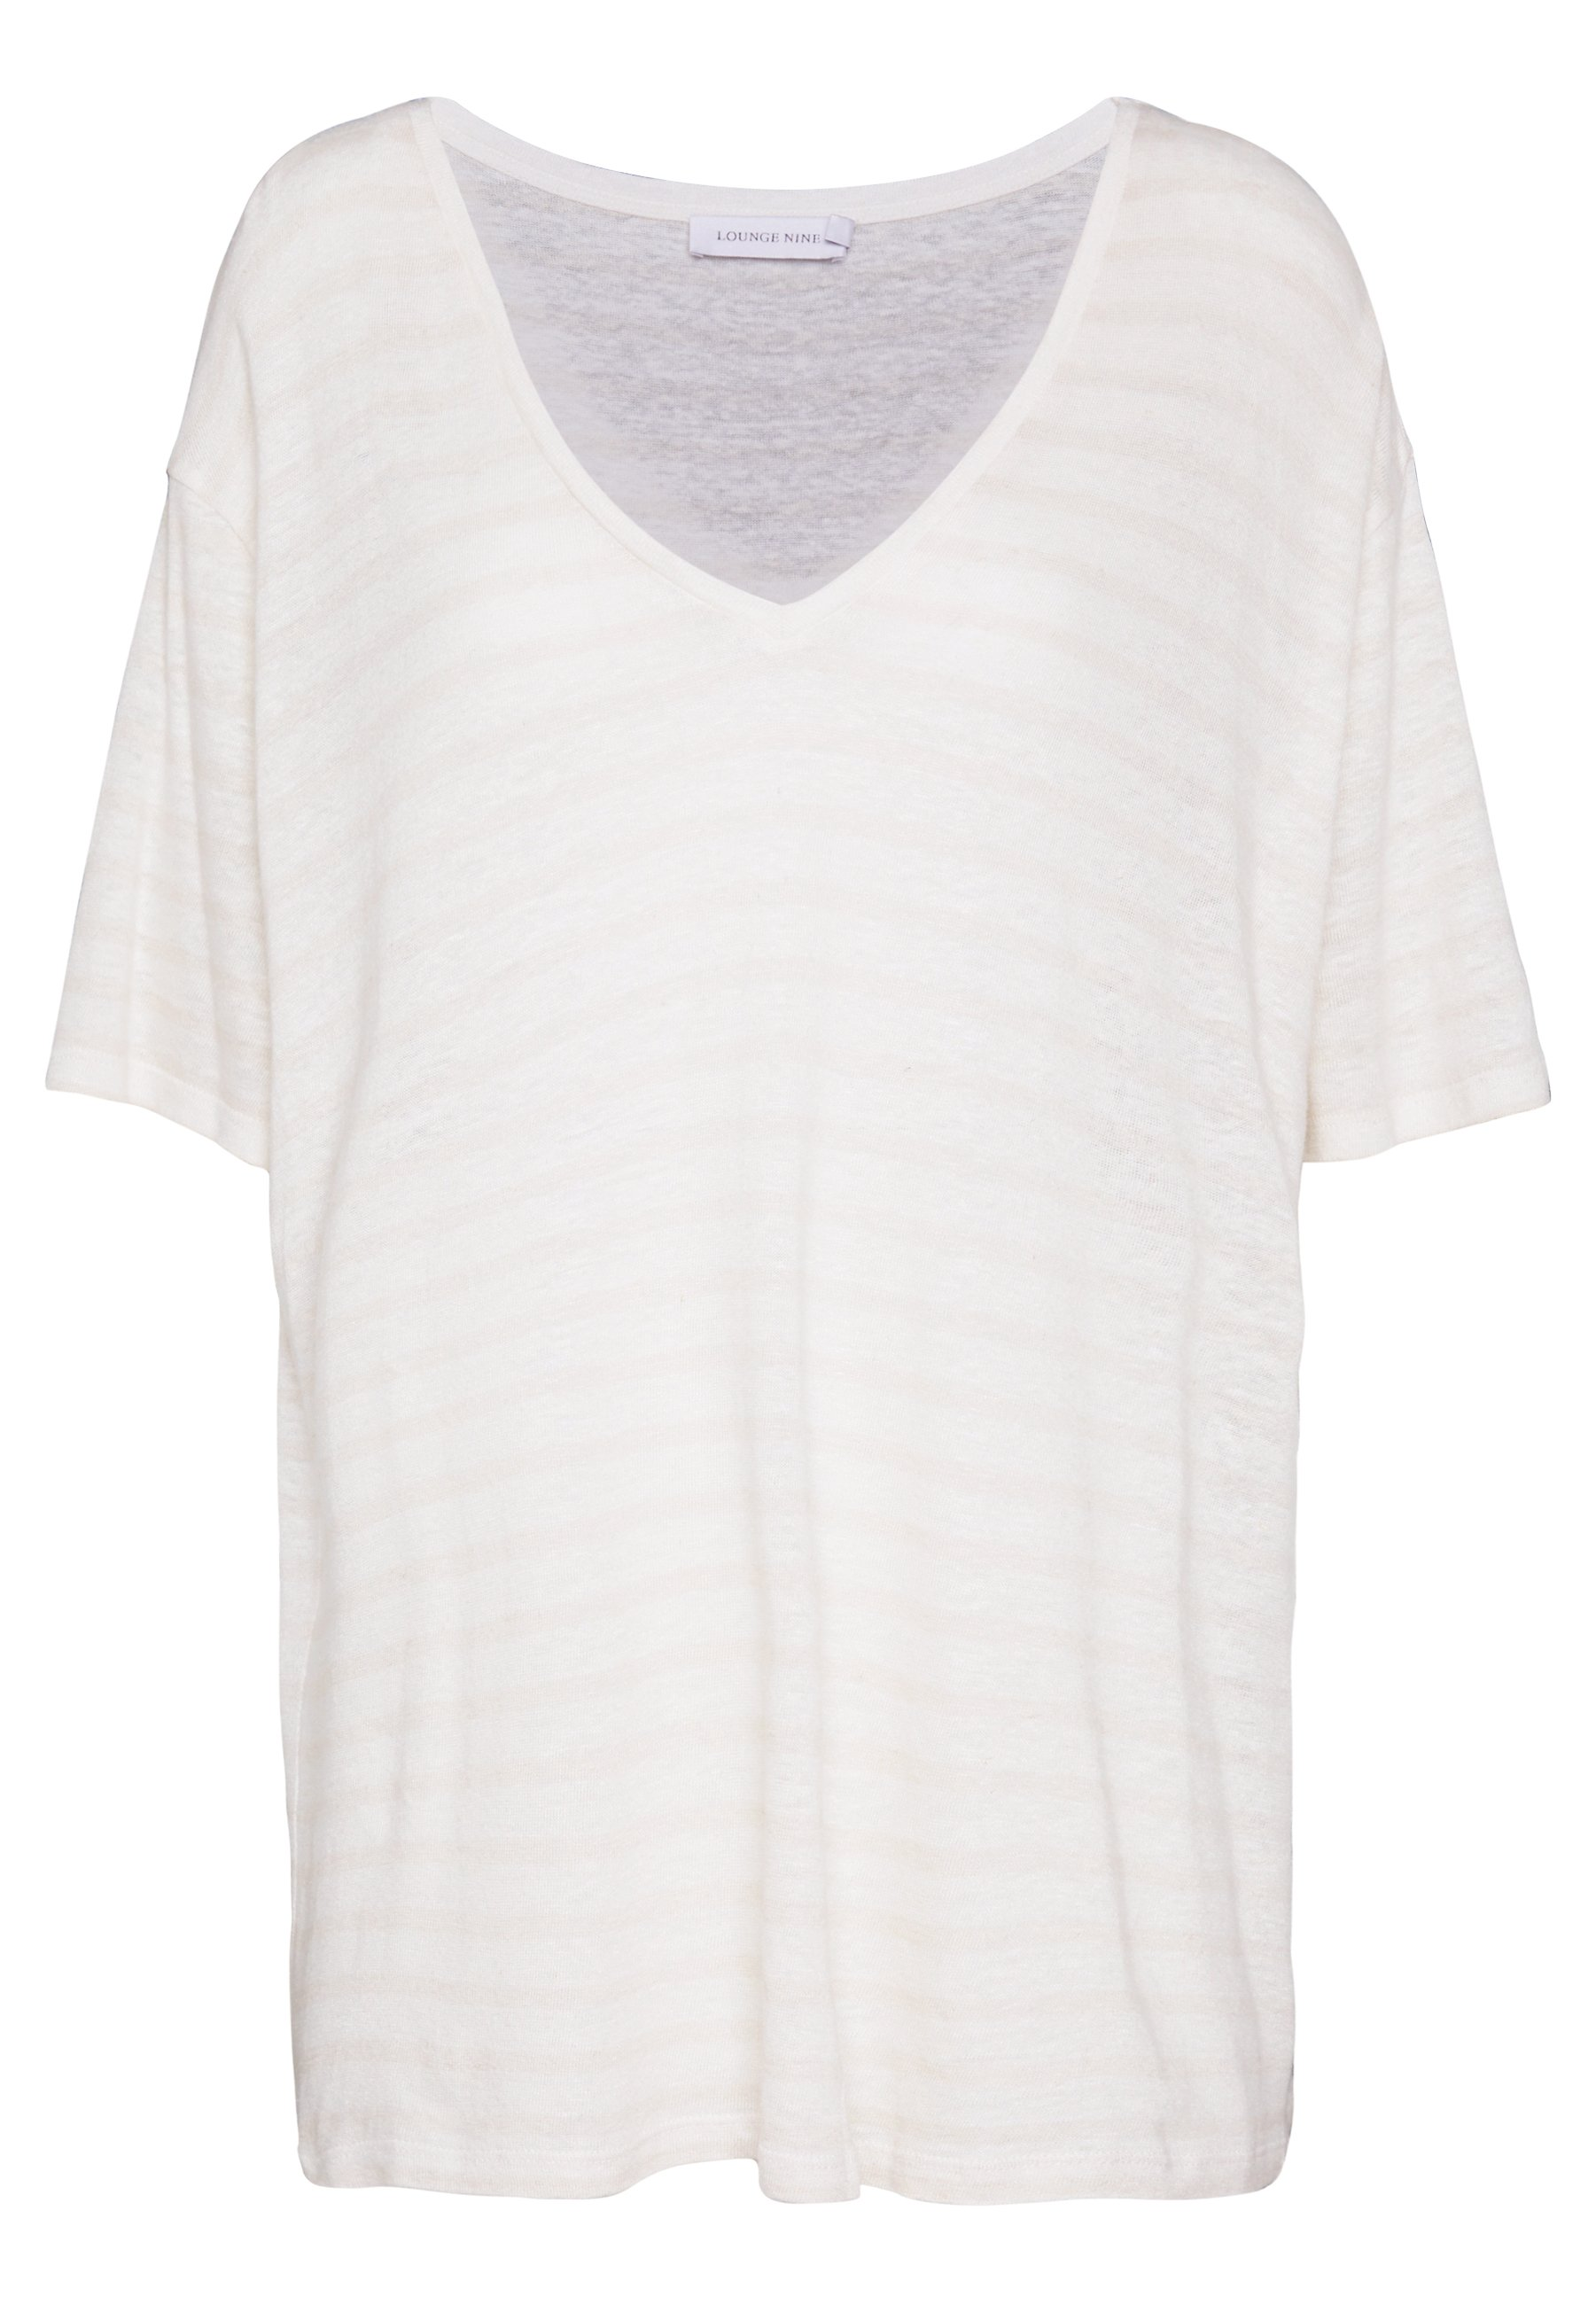 Lounge Nine T-shirts - Chalk/offwhite